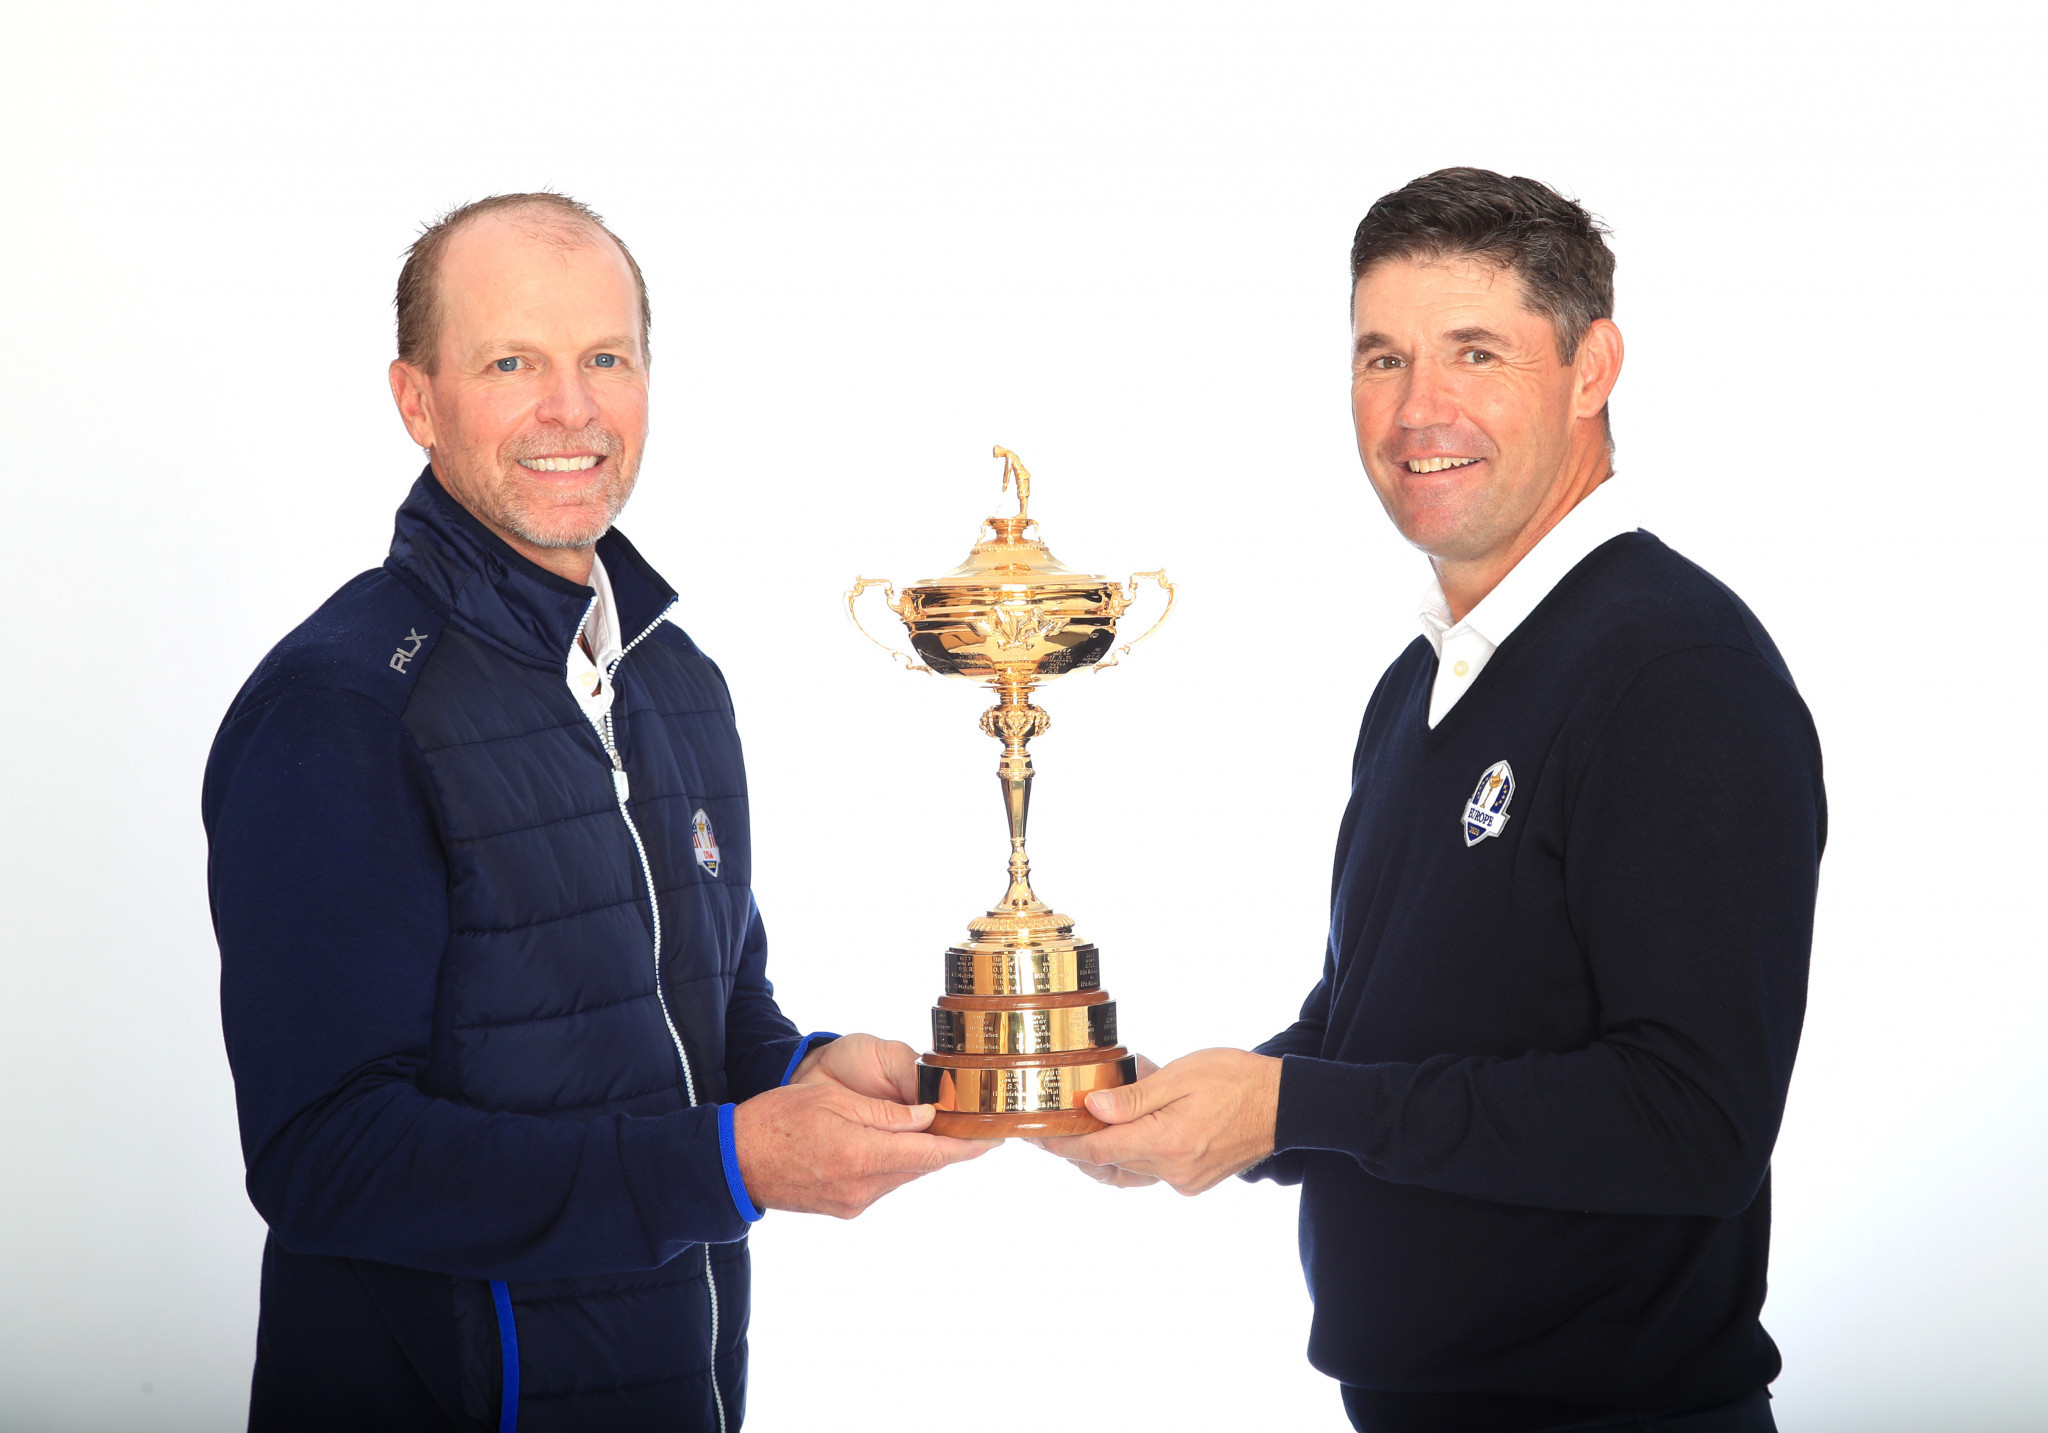 Ryder Cup captains write joint open letter in support against coronavirus